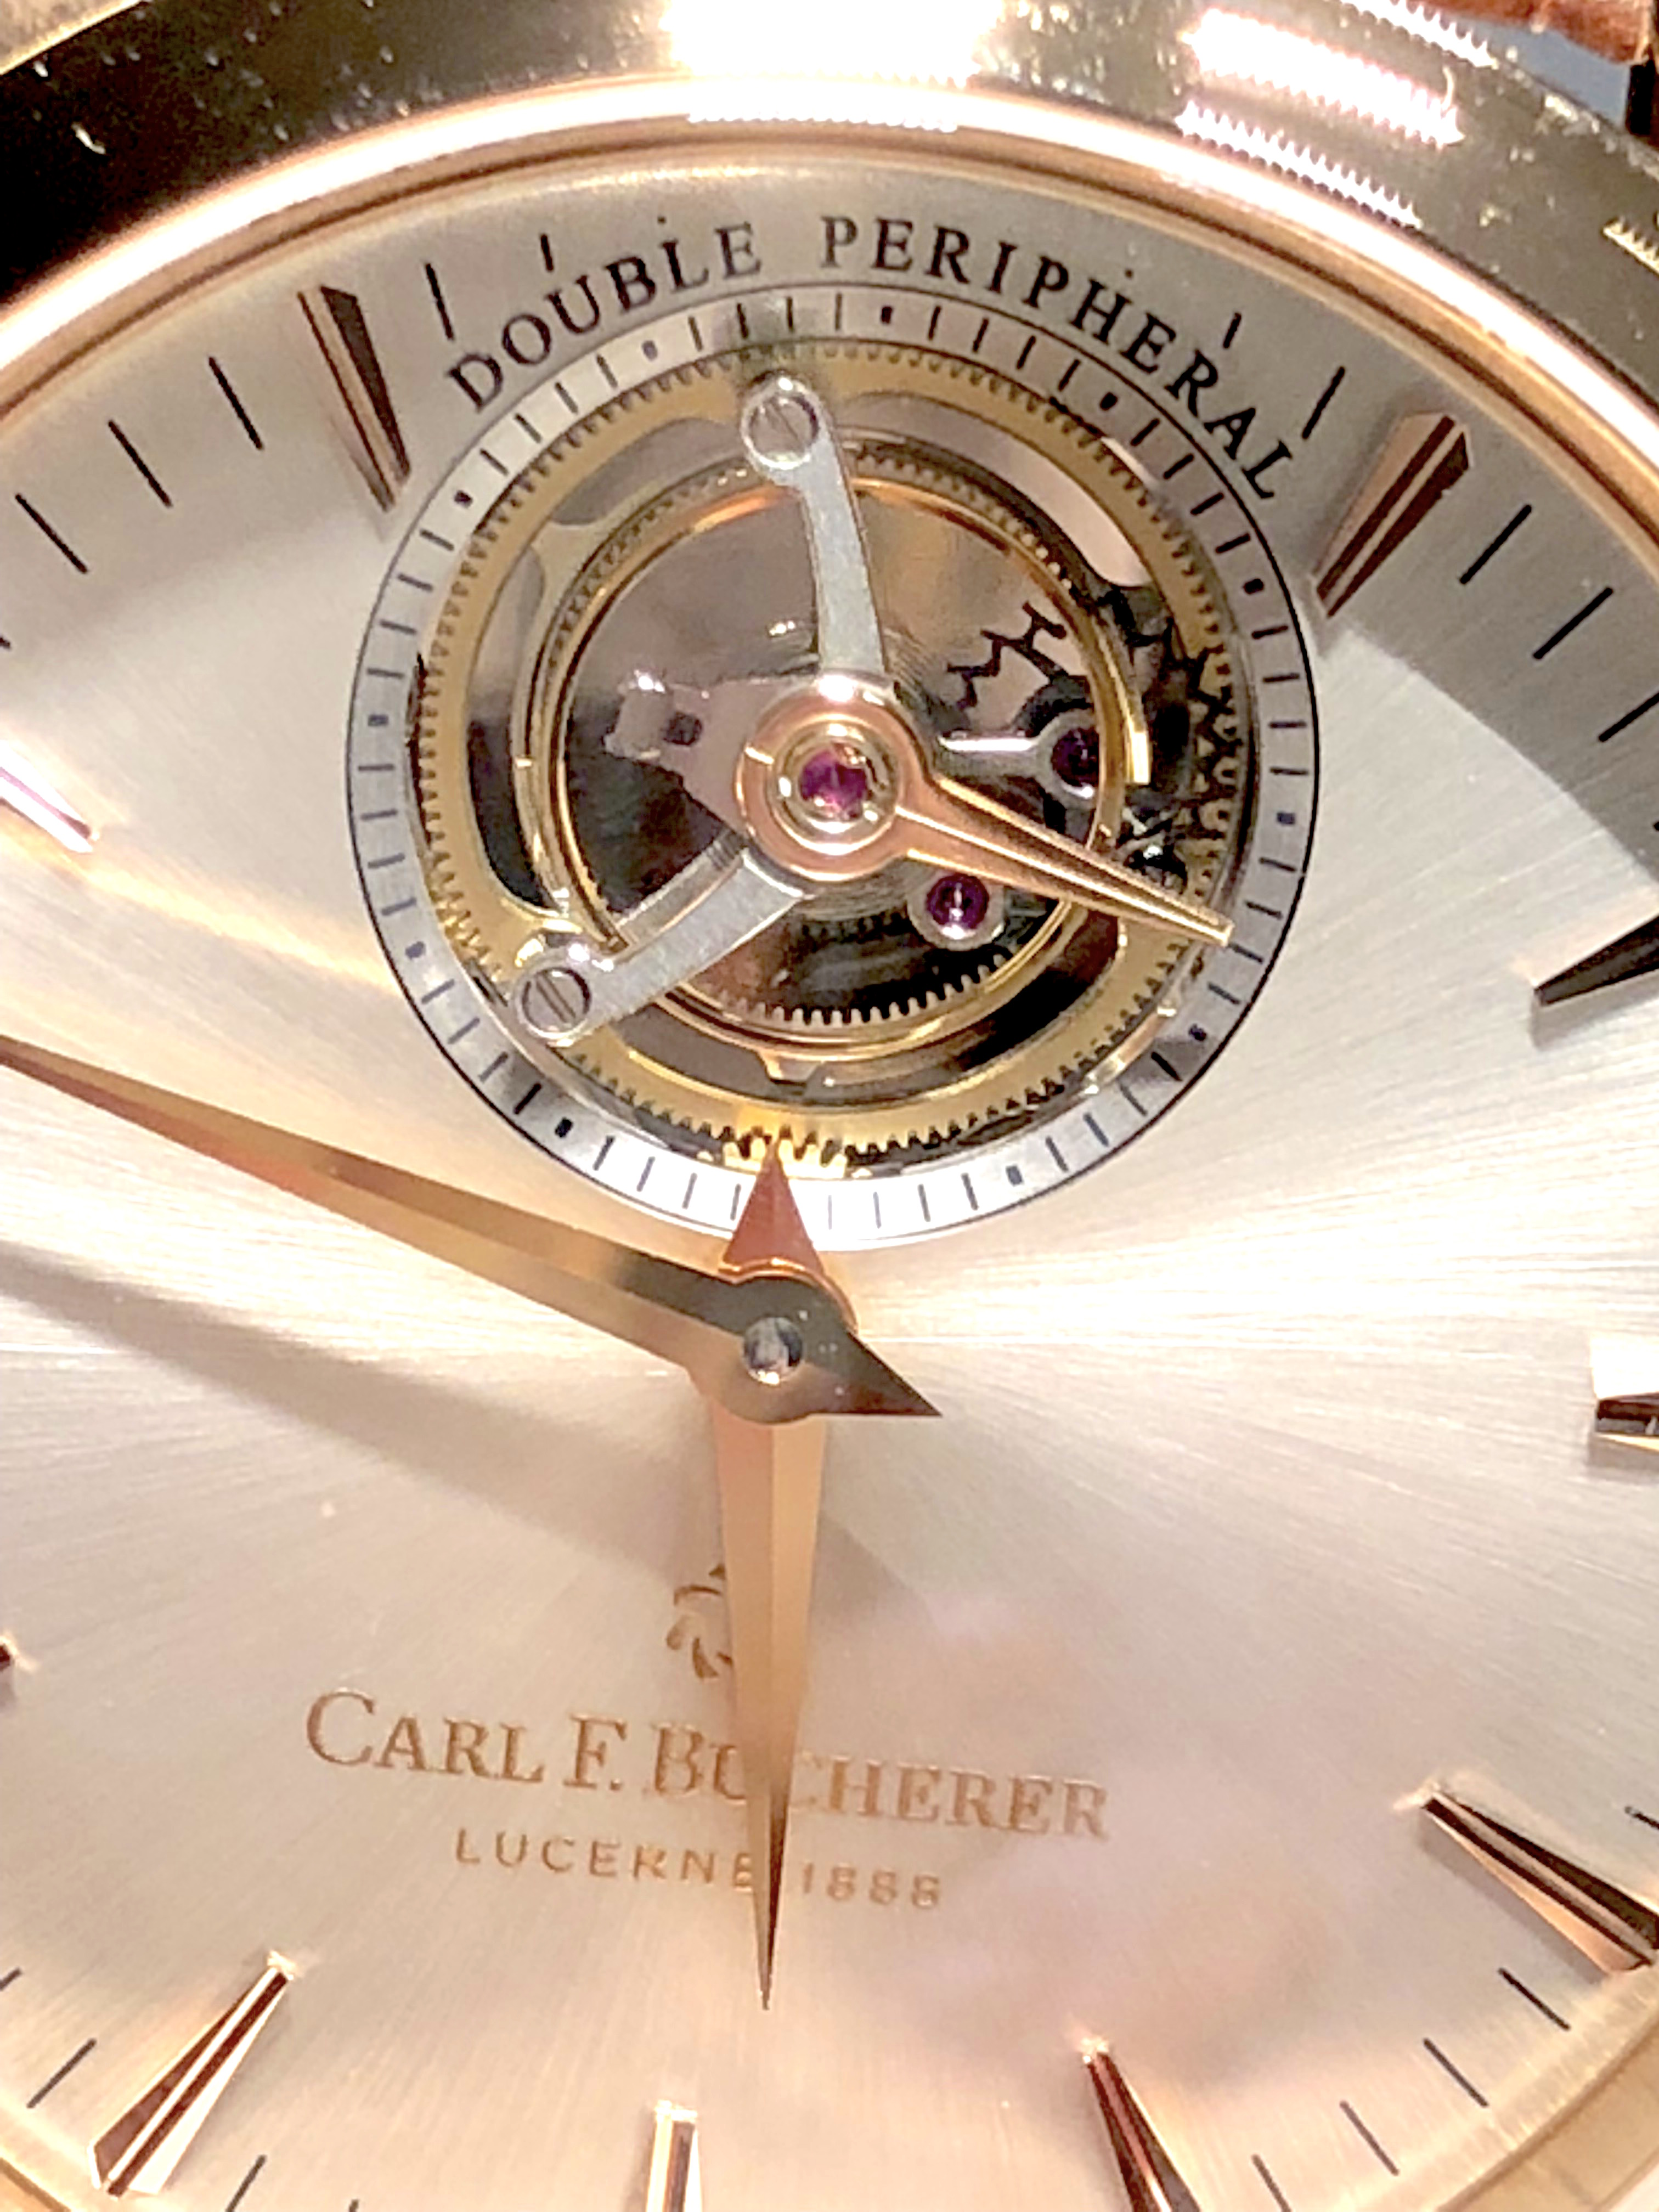 The tourbillon escapement of the Carl F. Bucherer Manero Tourbillon DoublePeripheral watch is peripherally mounted and can be viewed from the dial side and reverse side.